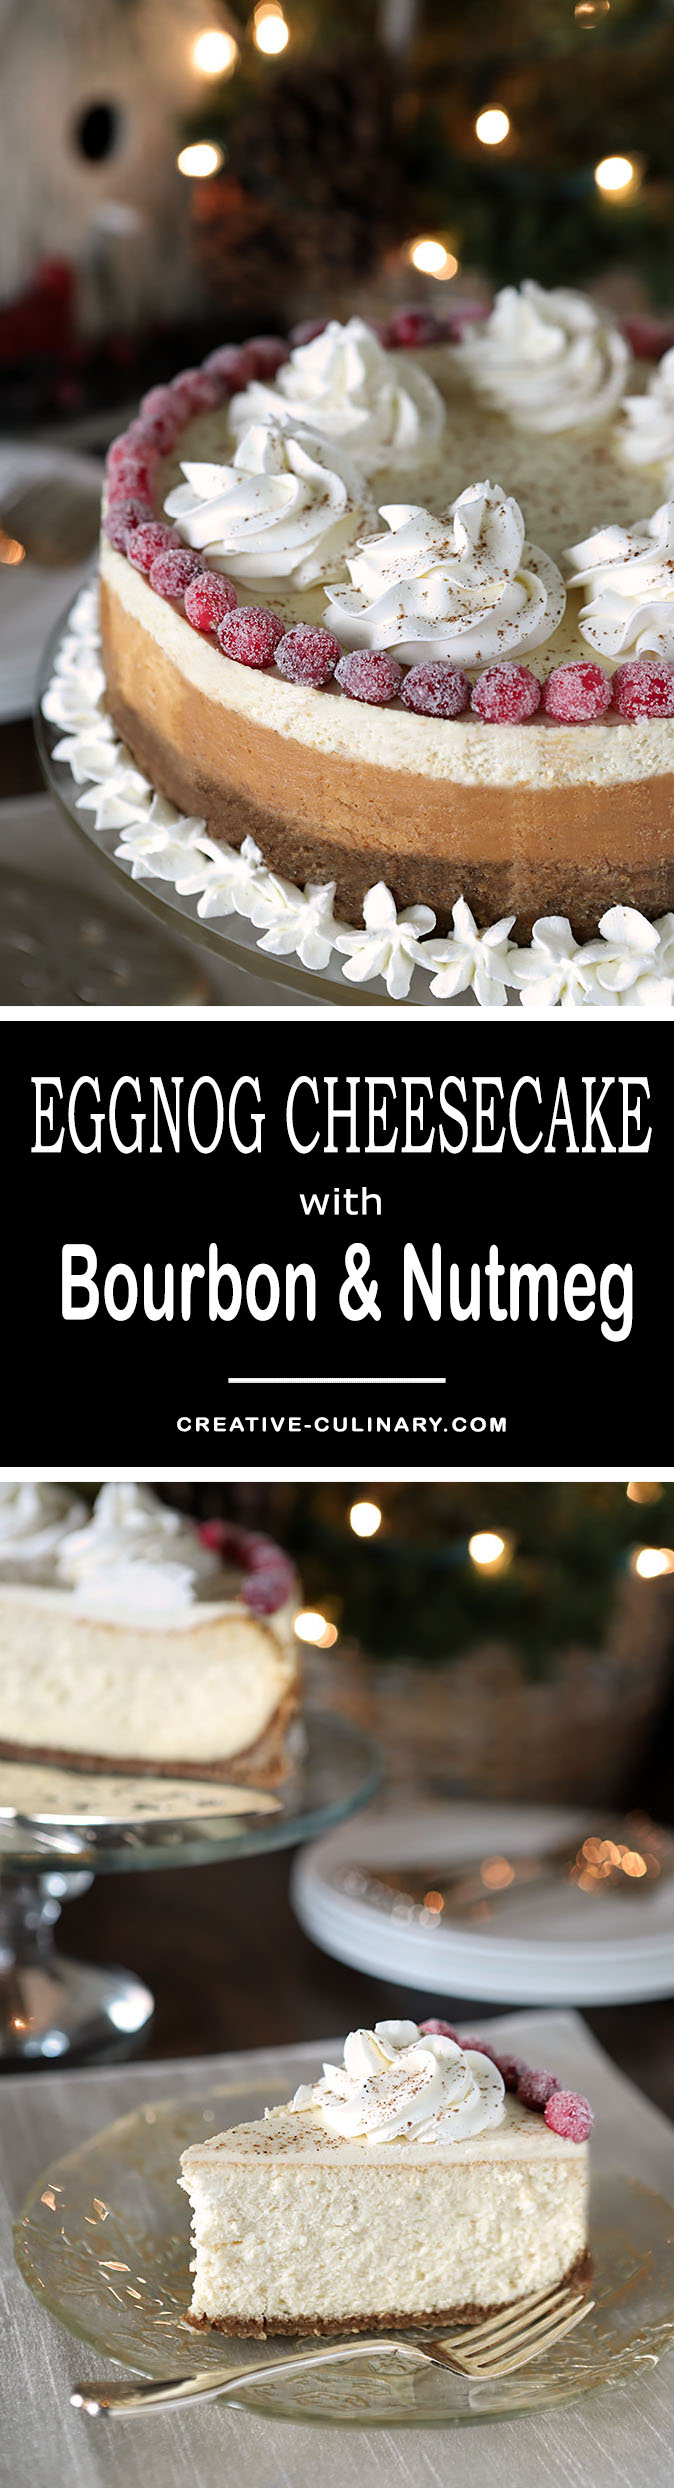 Make this Eggnog Cheesecake with Bourbon & Nutmeg on a Gingersnap Crust and both family and friends will love you forever!